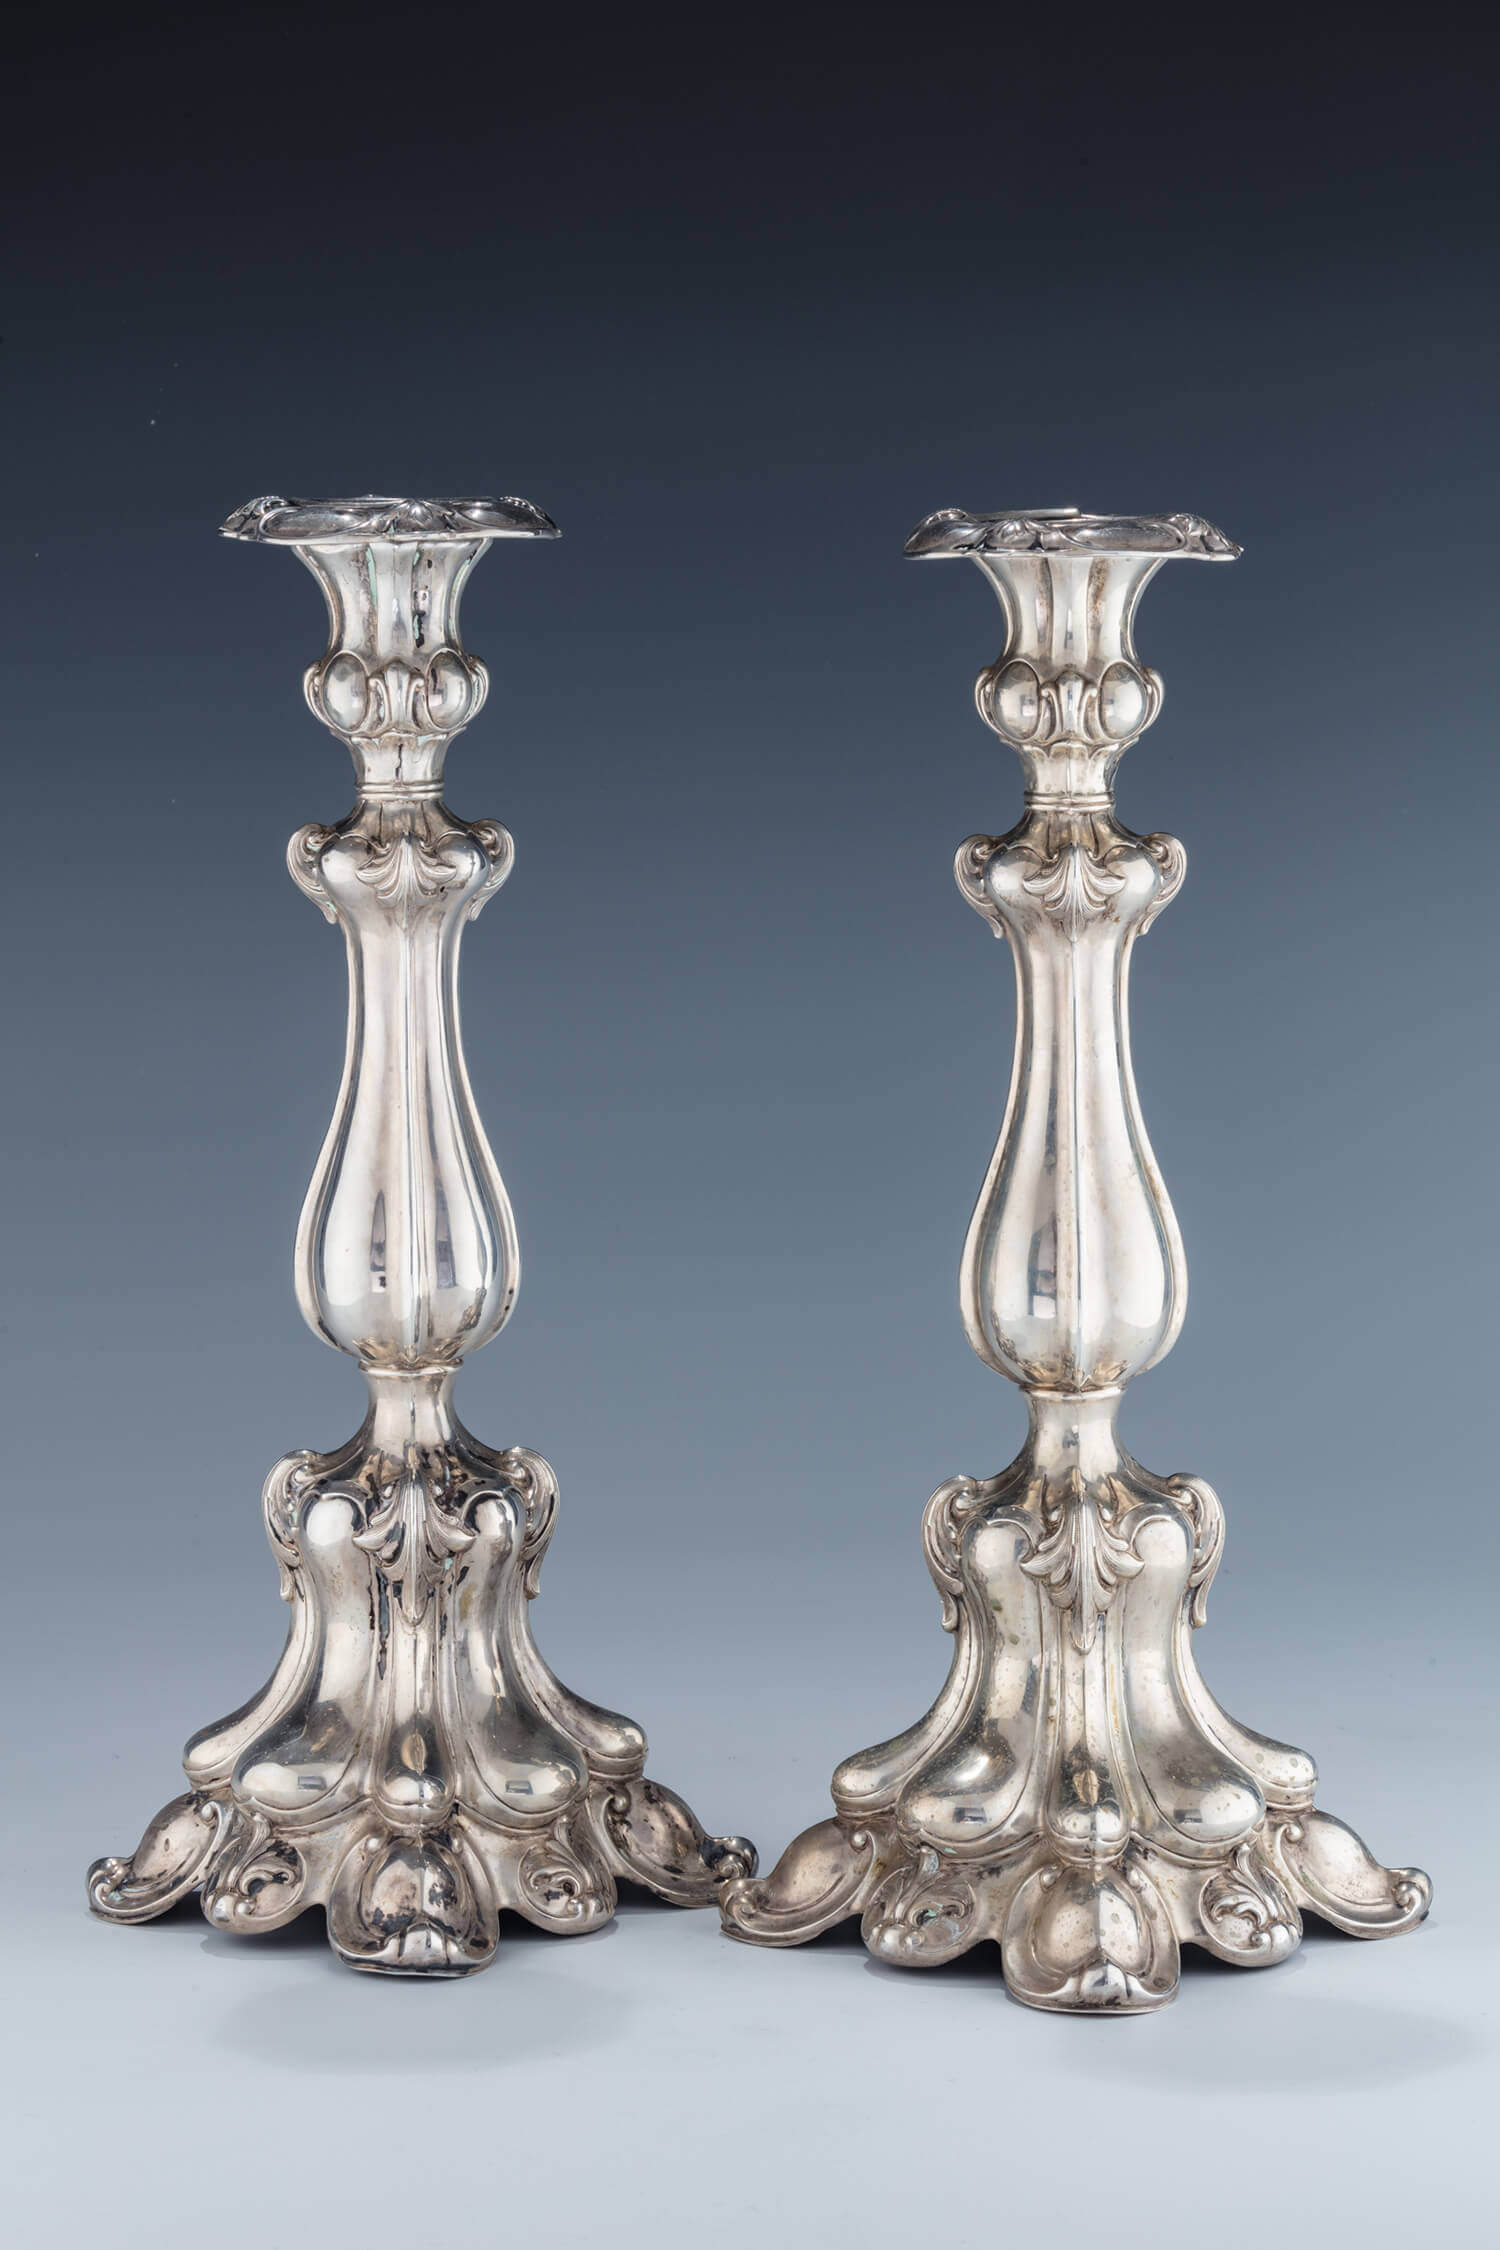 031. A PAIR OF SILVER CANDLESTICKS